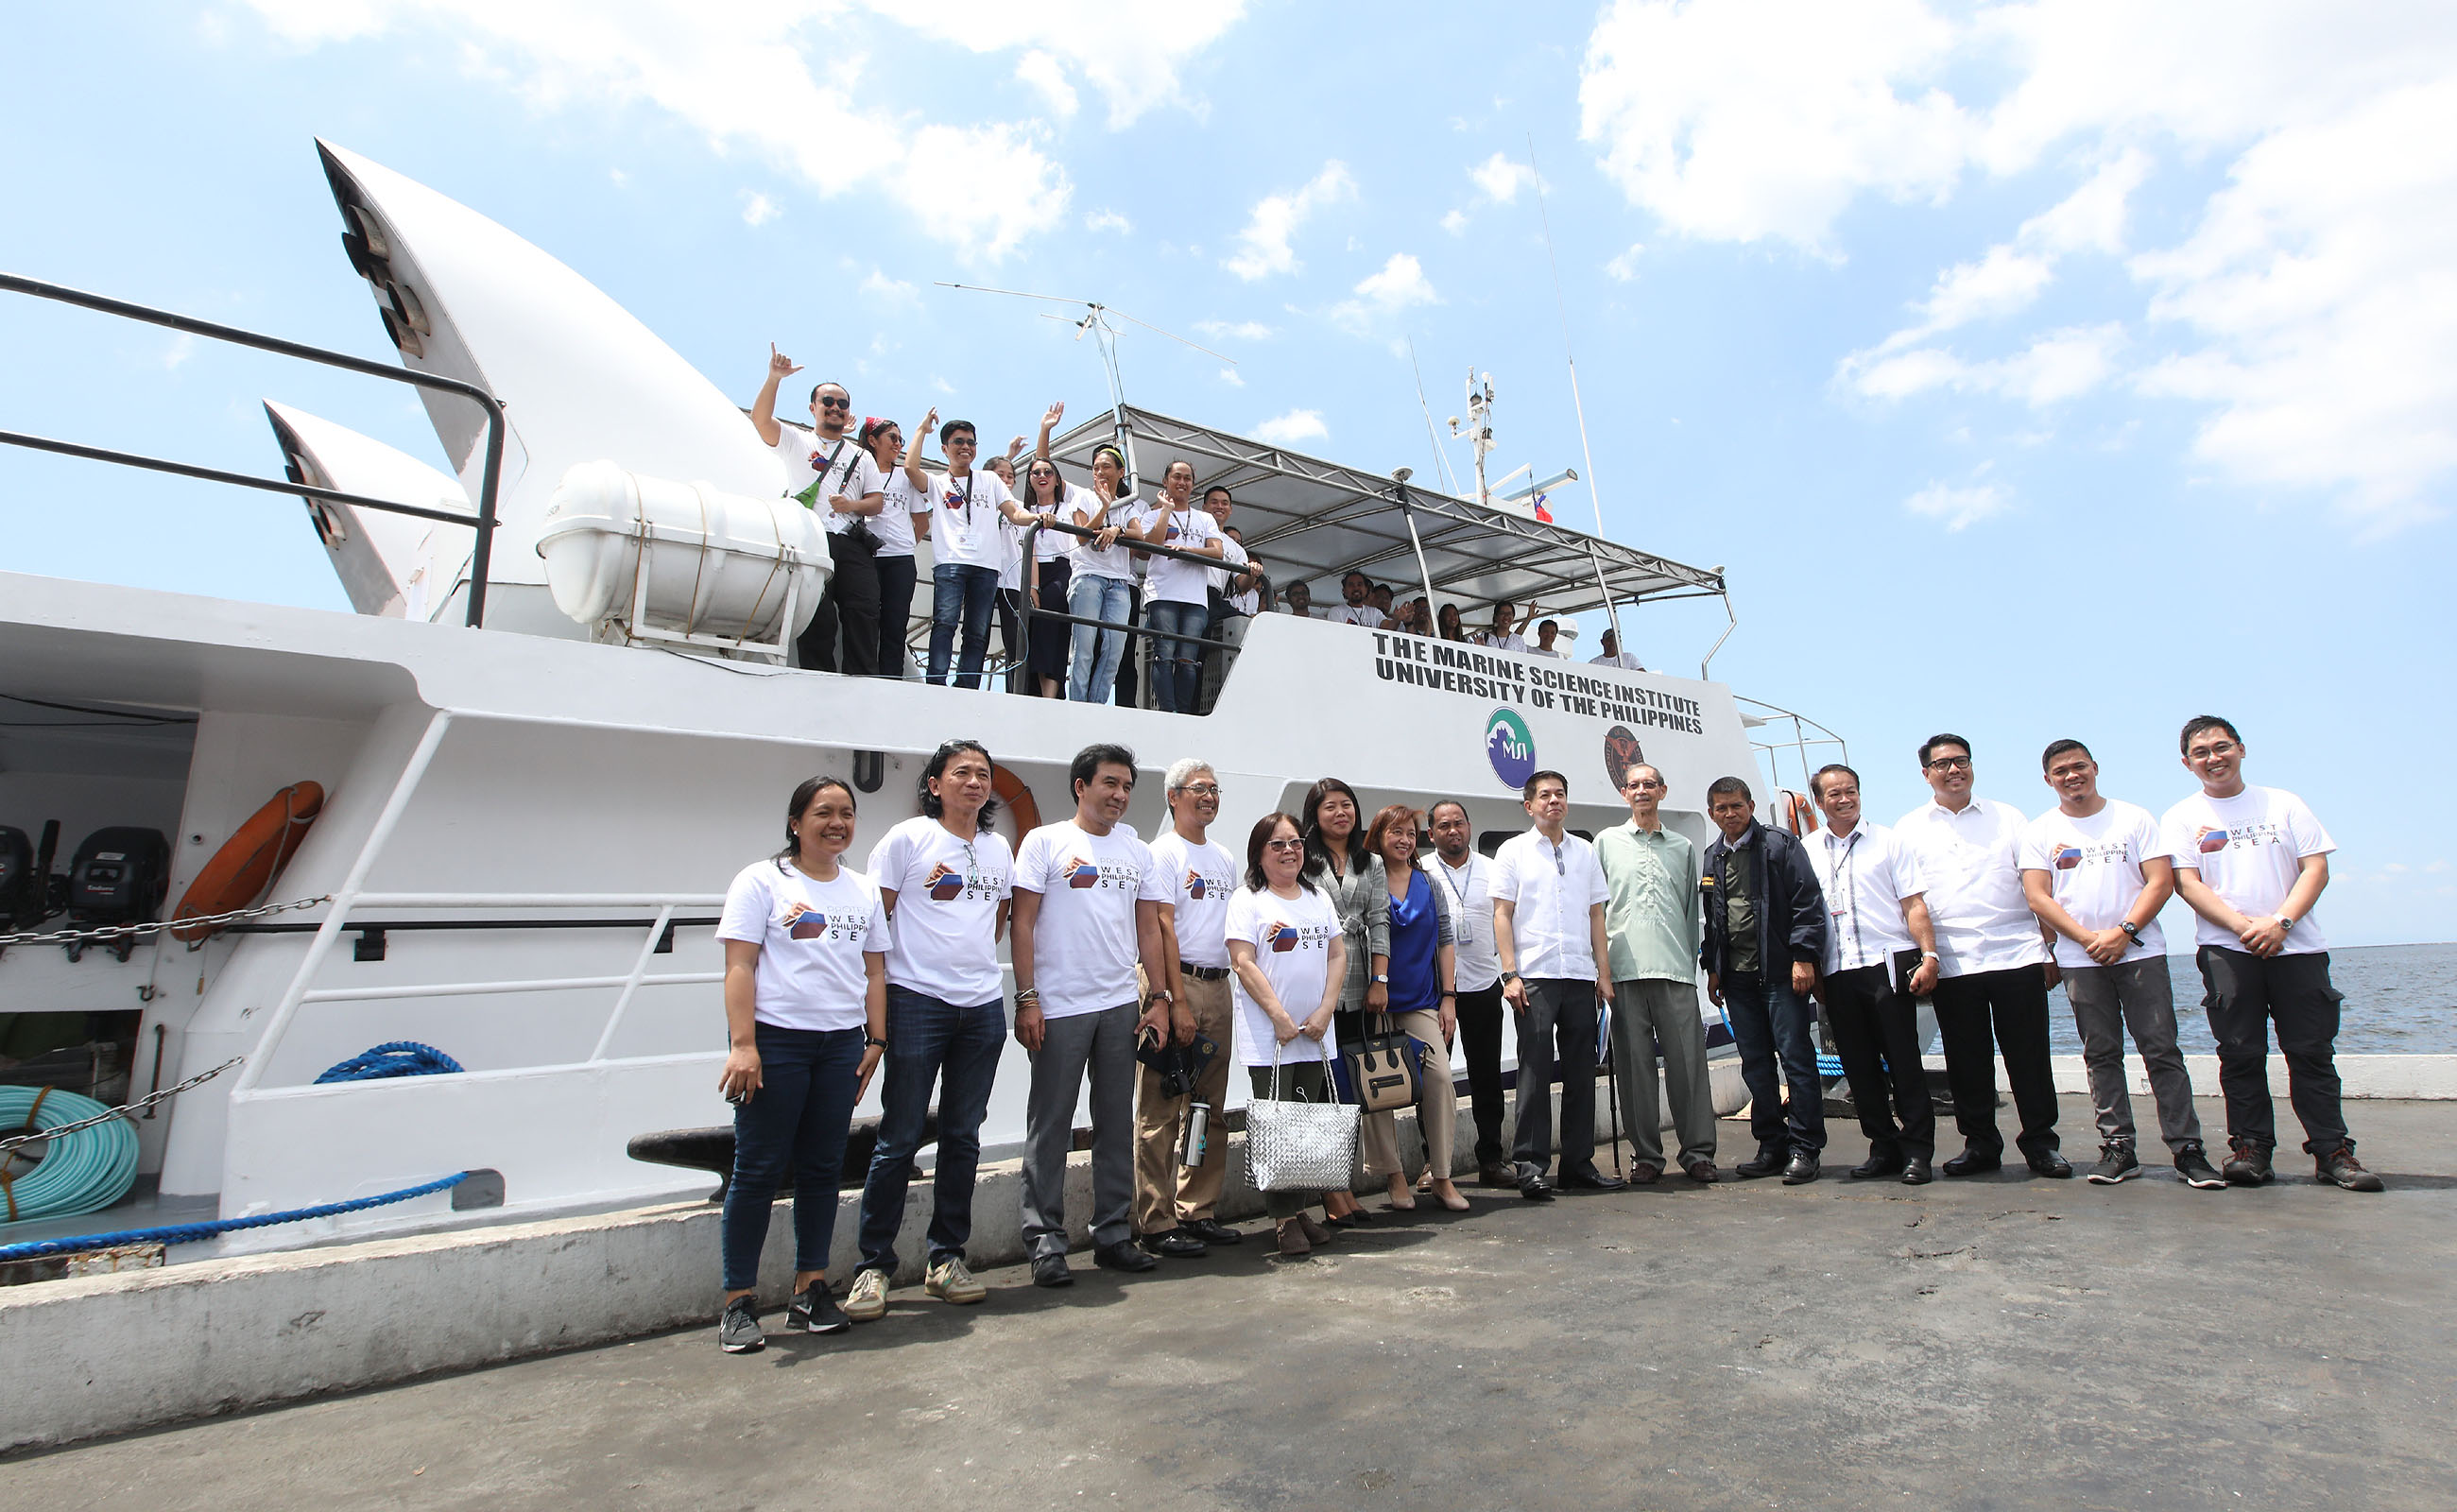 Scientists Find New Vessel For >> Filipino Scientists Sail To Find Out Food Importance Of Spratlys